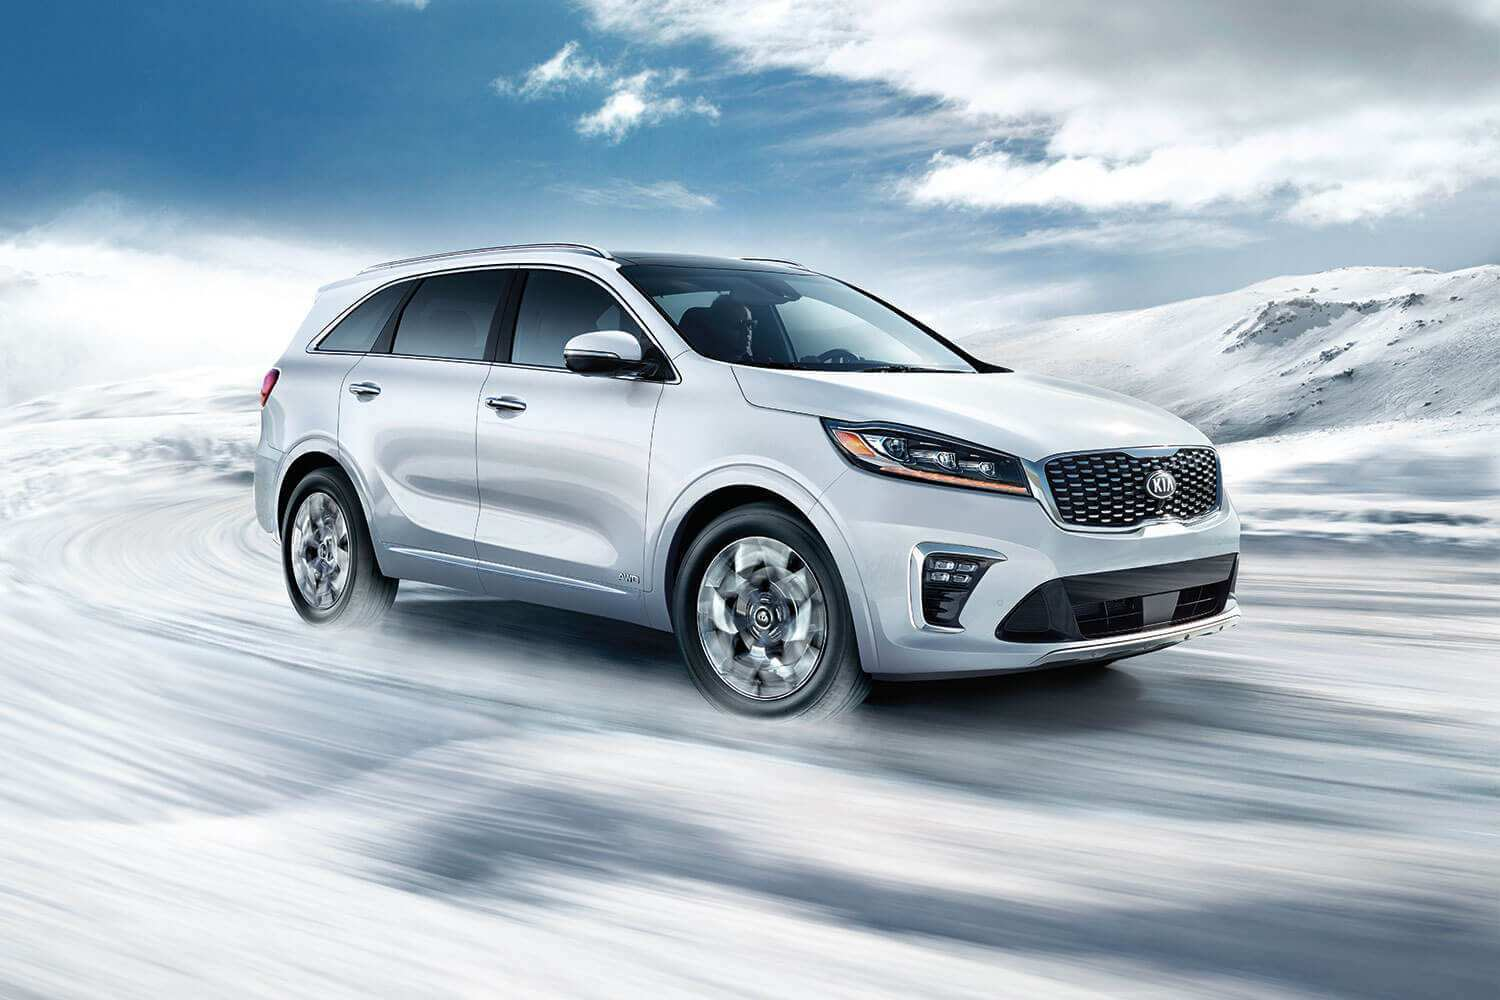 12 All New 2019 Kia Sorento Warranty New Concept Release Date by 2019 Kia Sorento Warranty New Concept